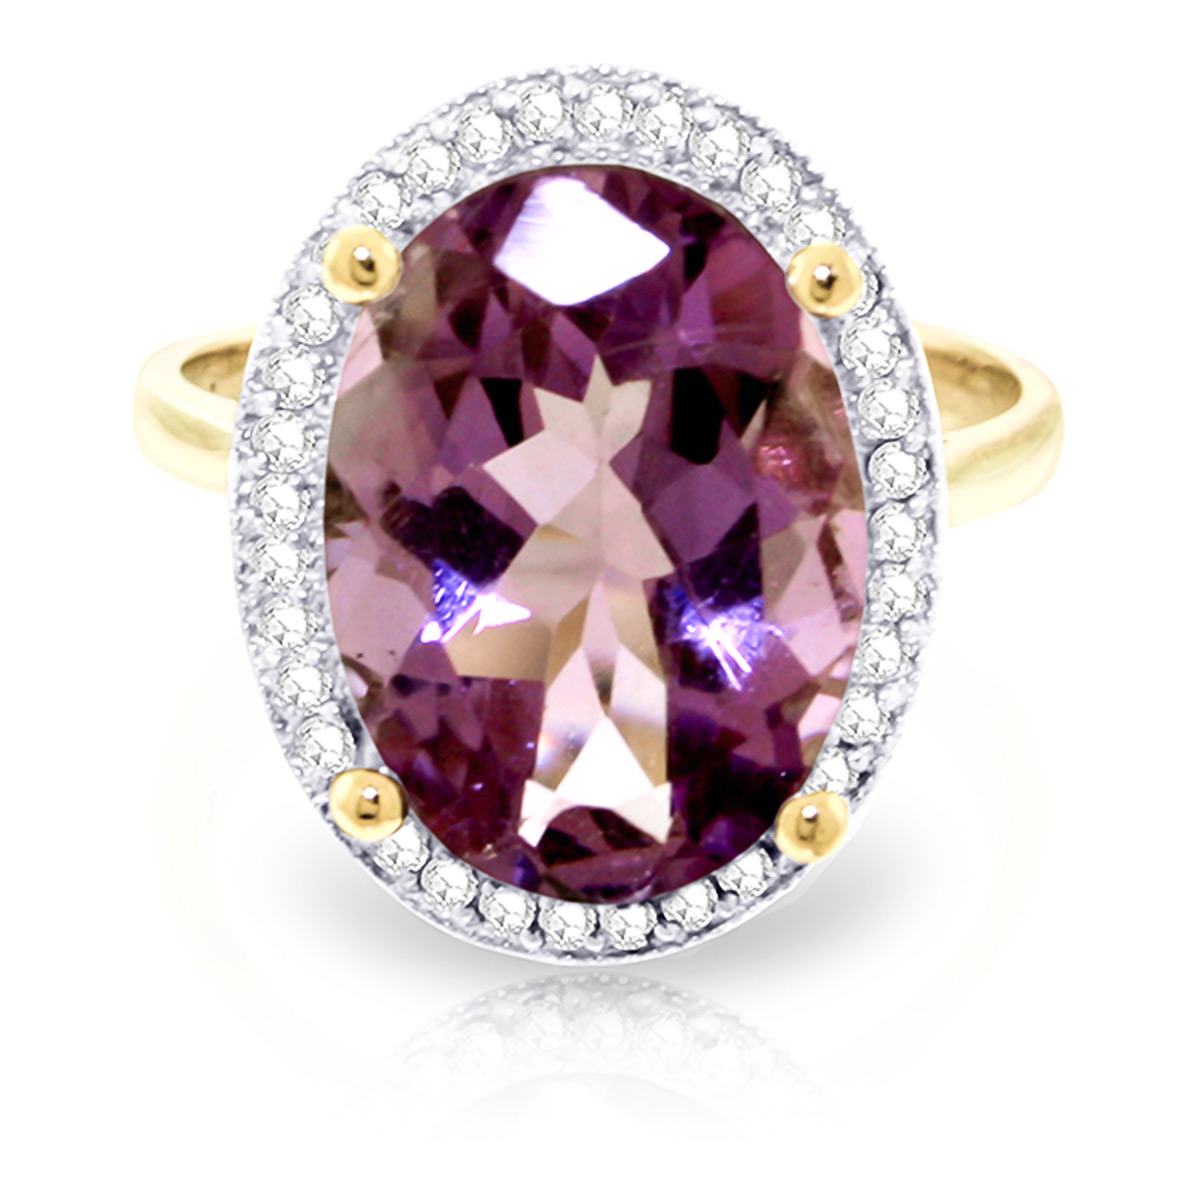 Amethyst and Diamond Halo Ring 5.1ct in 9ct Gold